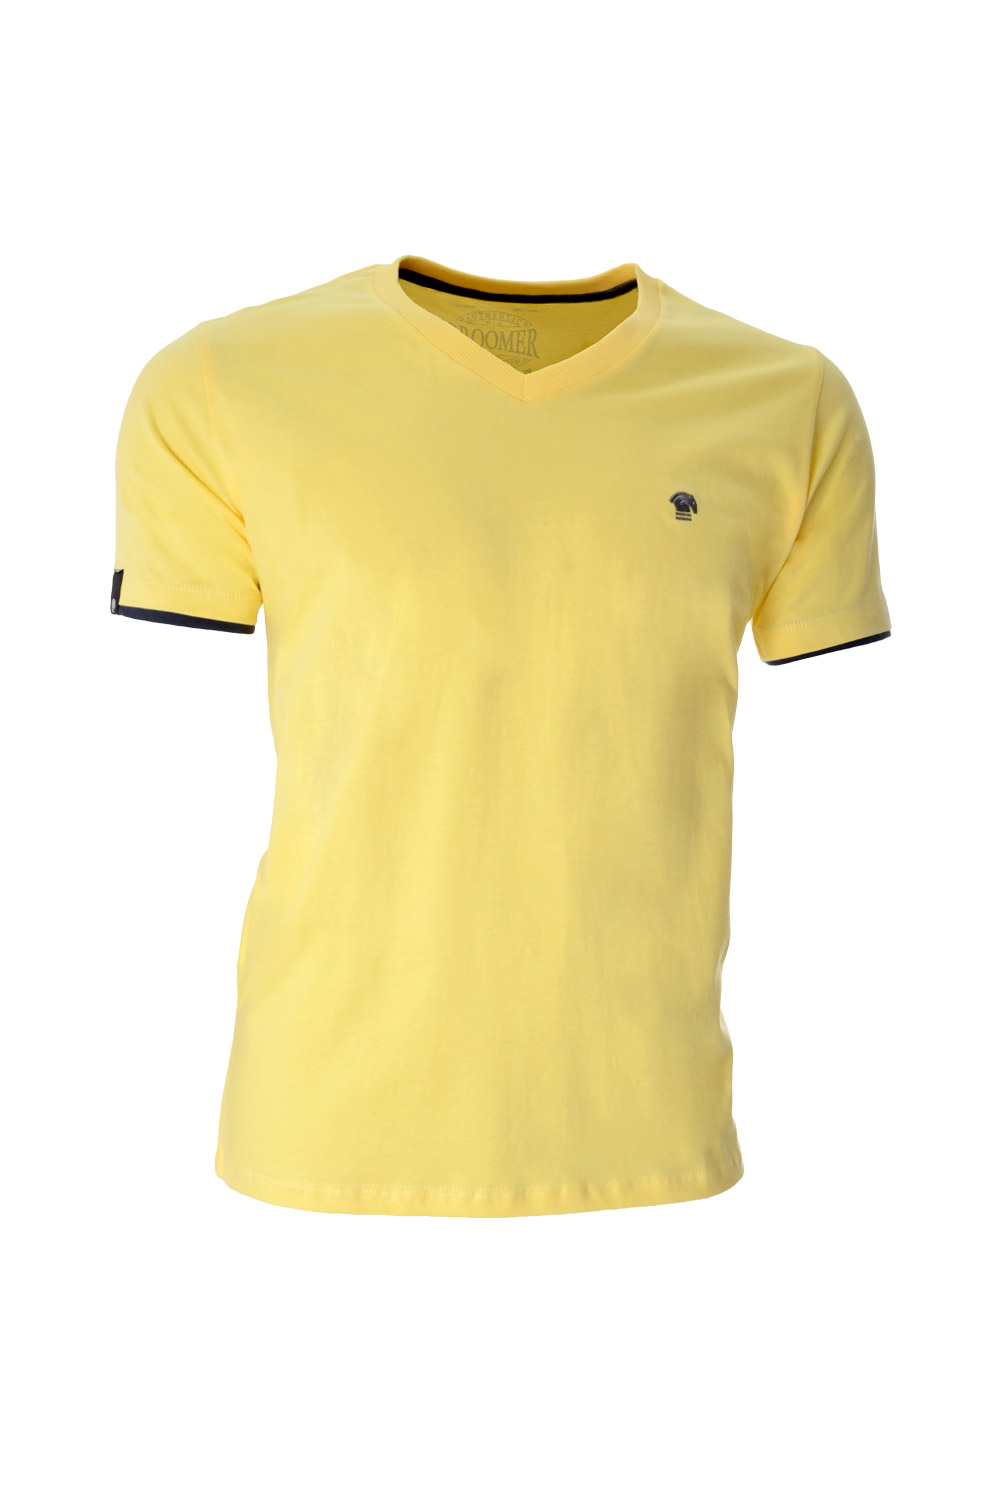 CAMISETA MC BLUES SUPER SLIM ALGODAO GOLA V LISO AMARELO CLARO